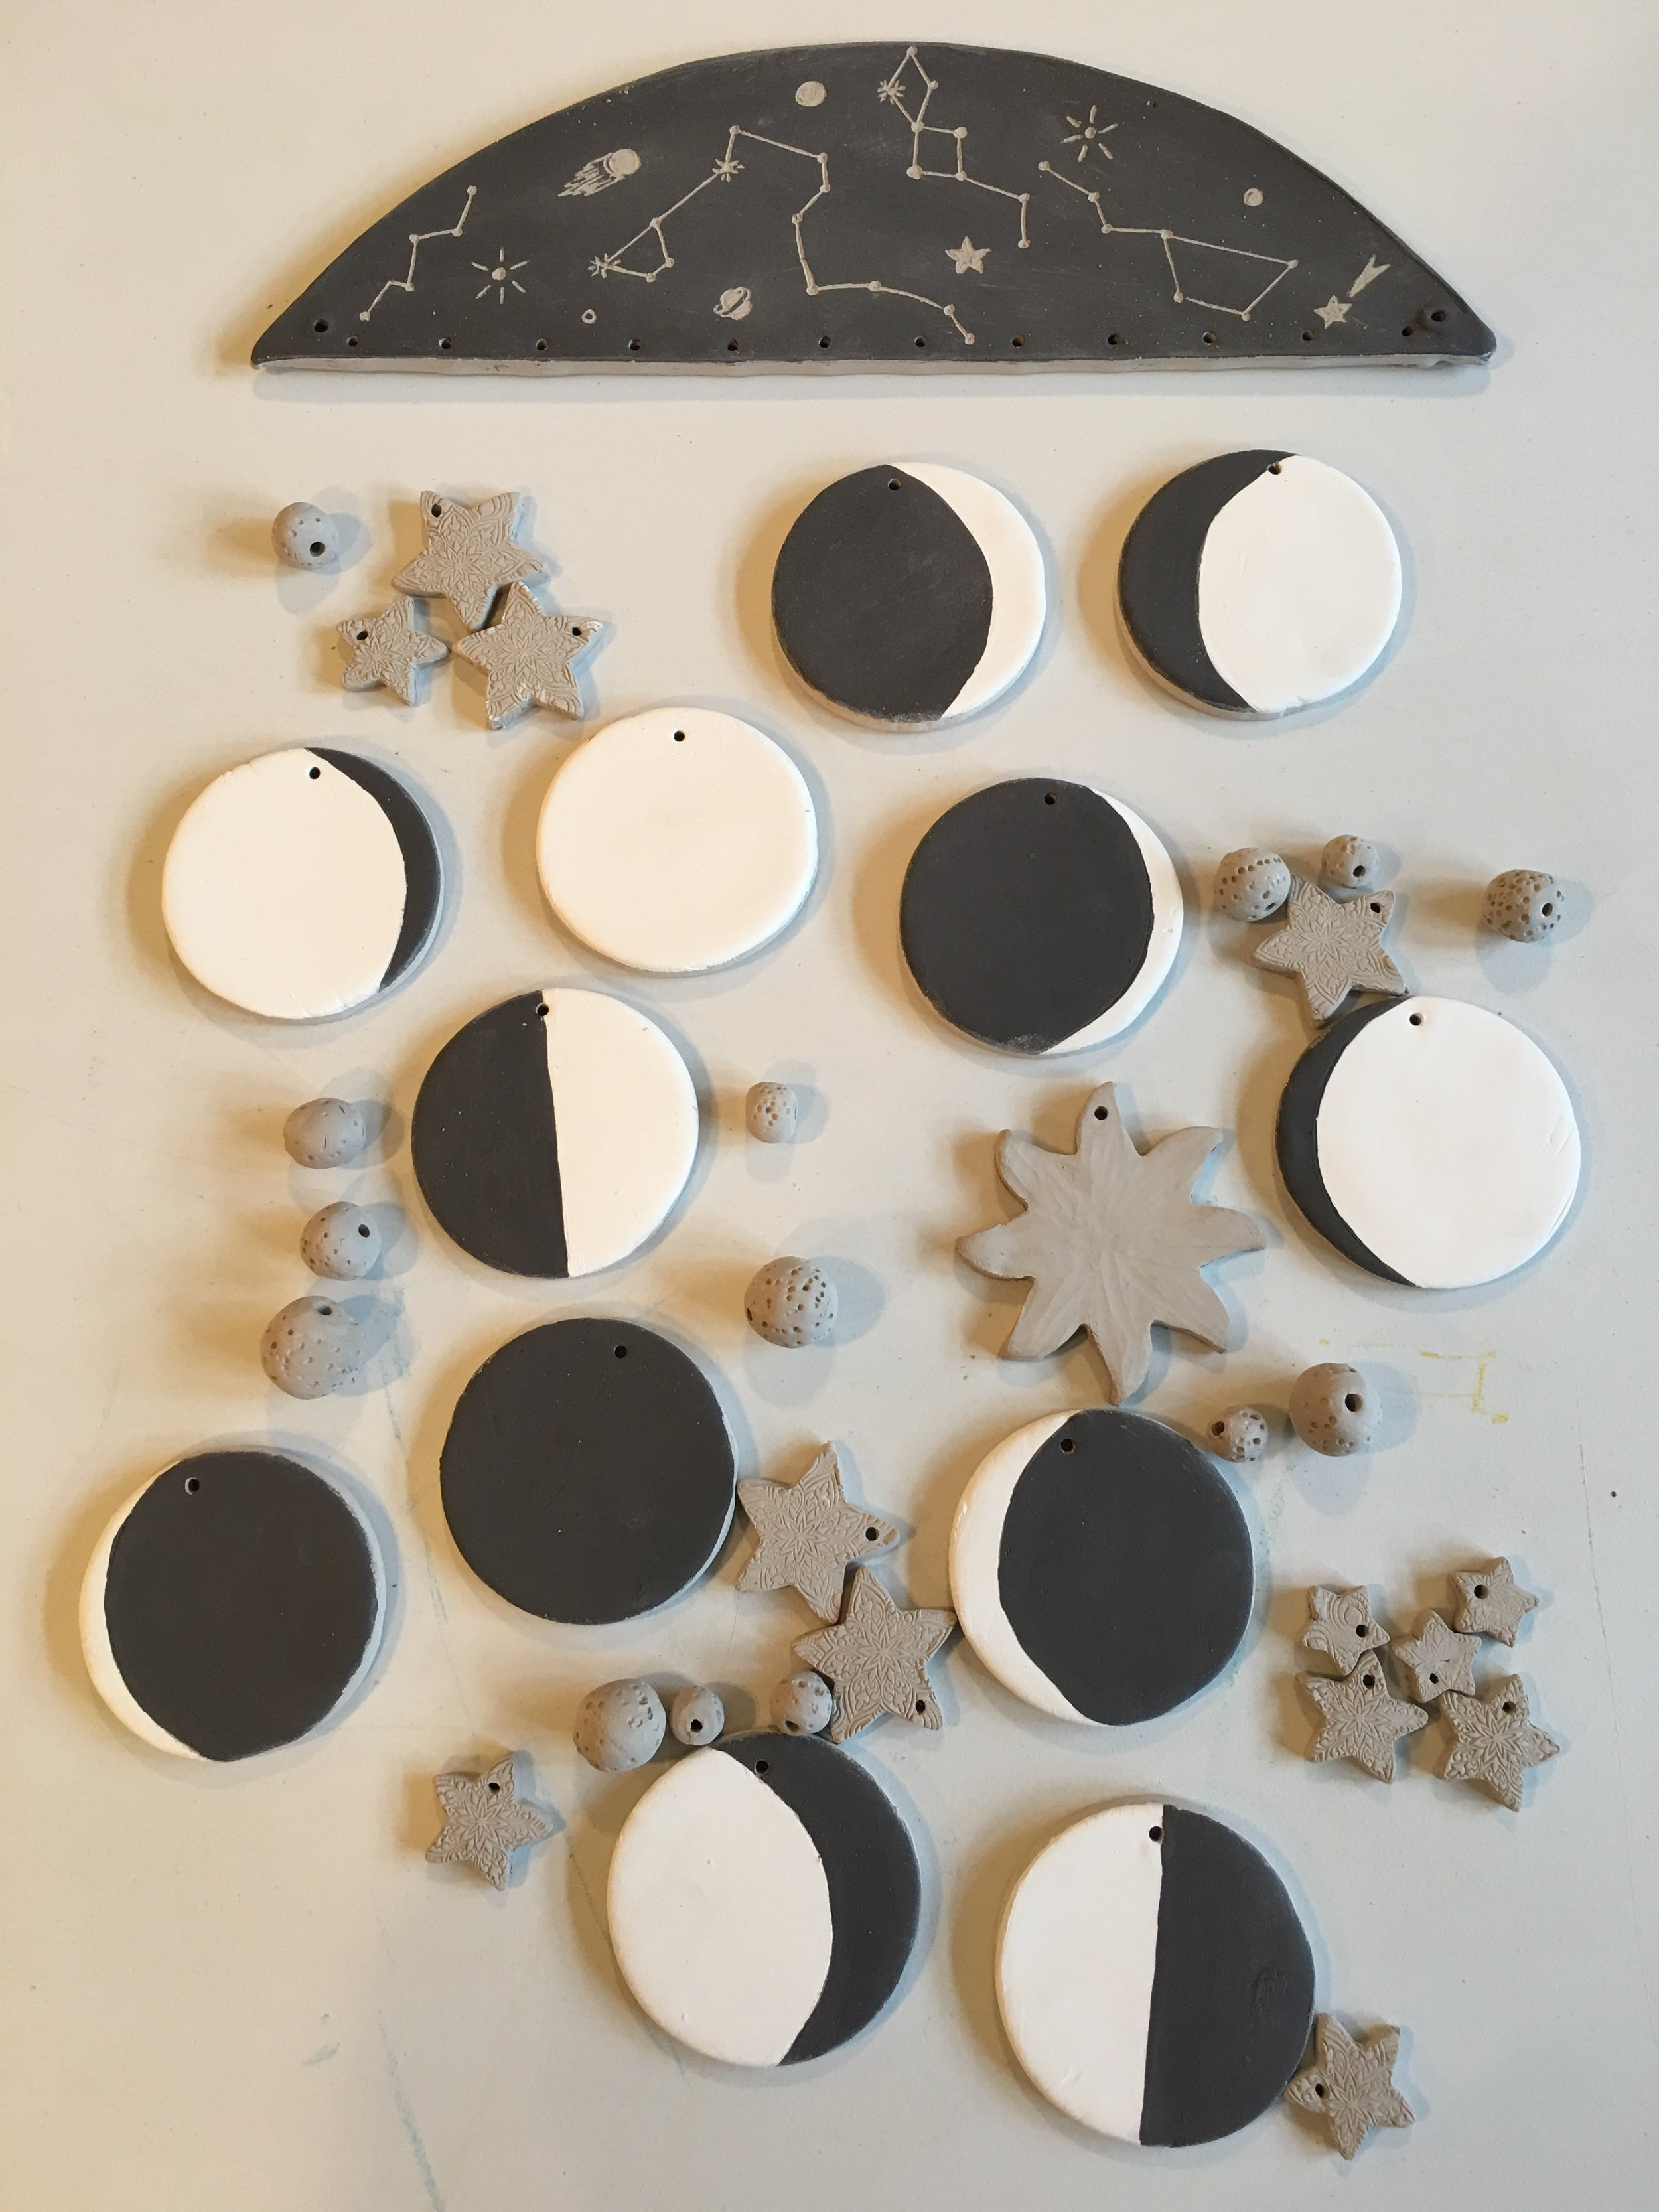 """Here is my """"moon phases"""" sample with a """"constellation base,"""" once it is fired I will assemble it to hang on the wall."""